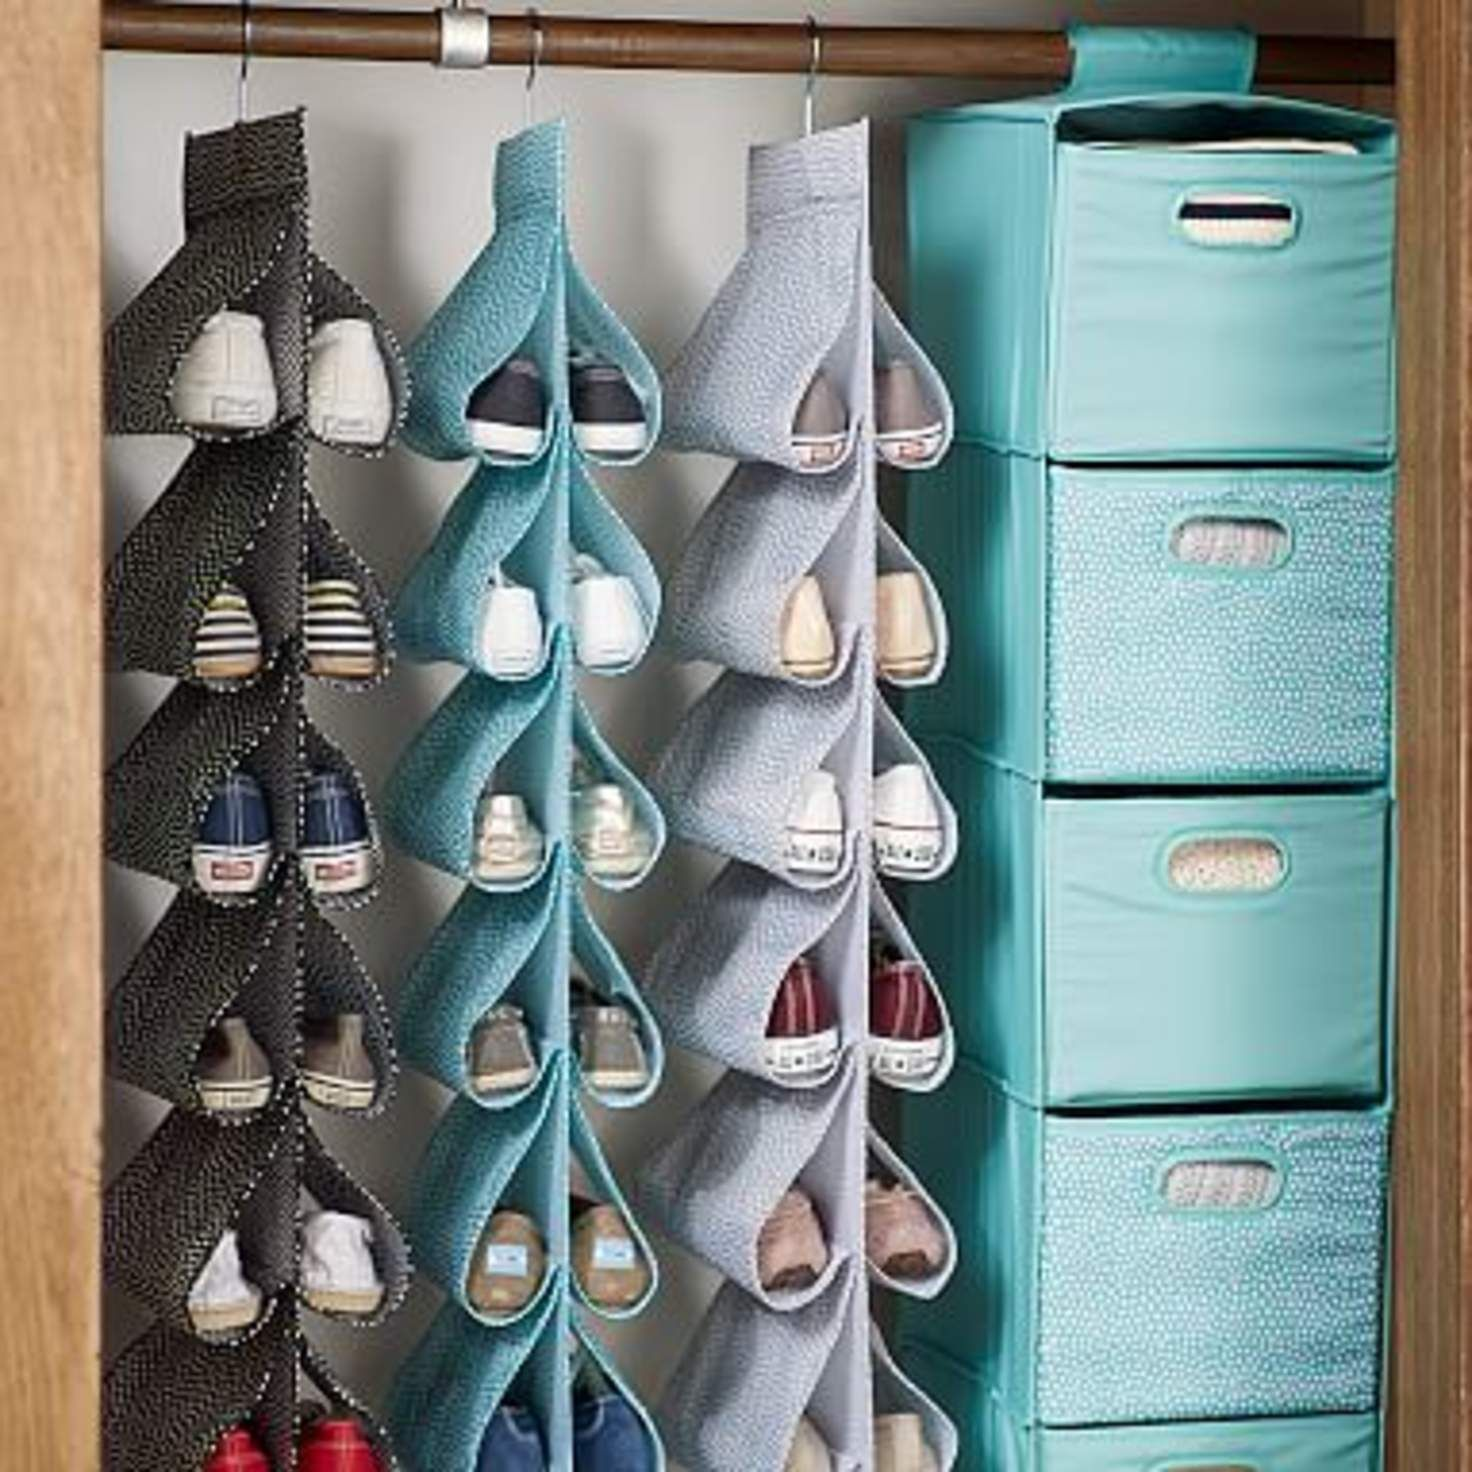 Best 25+ Hanging Organizer Ideas On Pinterest | Pocket Organizer, Vintage  Lace Crafts And Hanging Closet Organizer